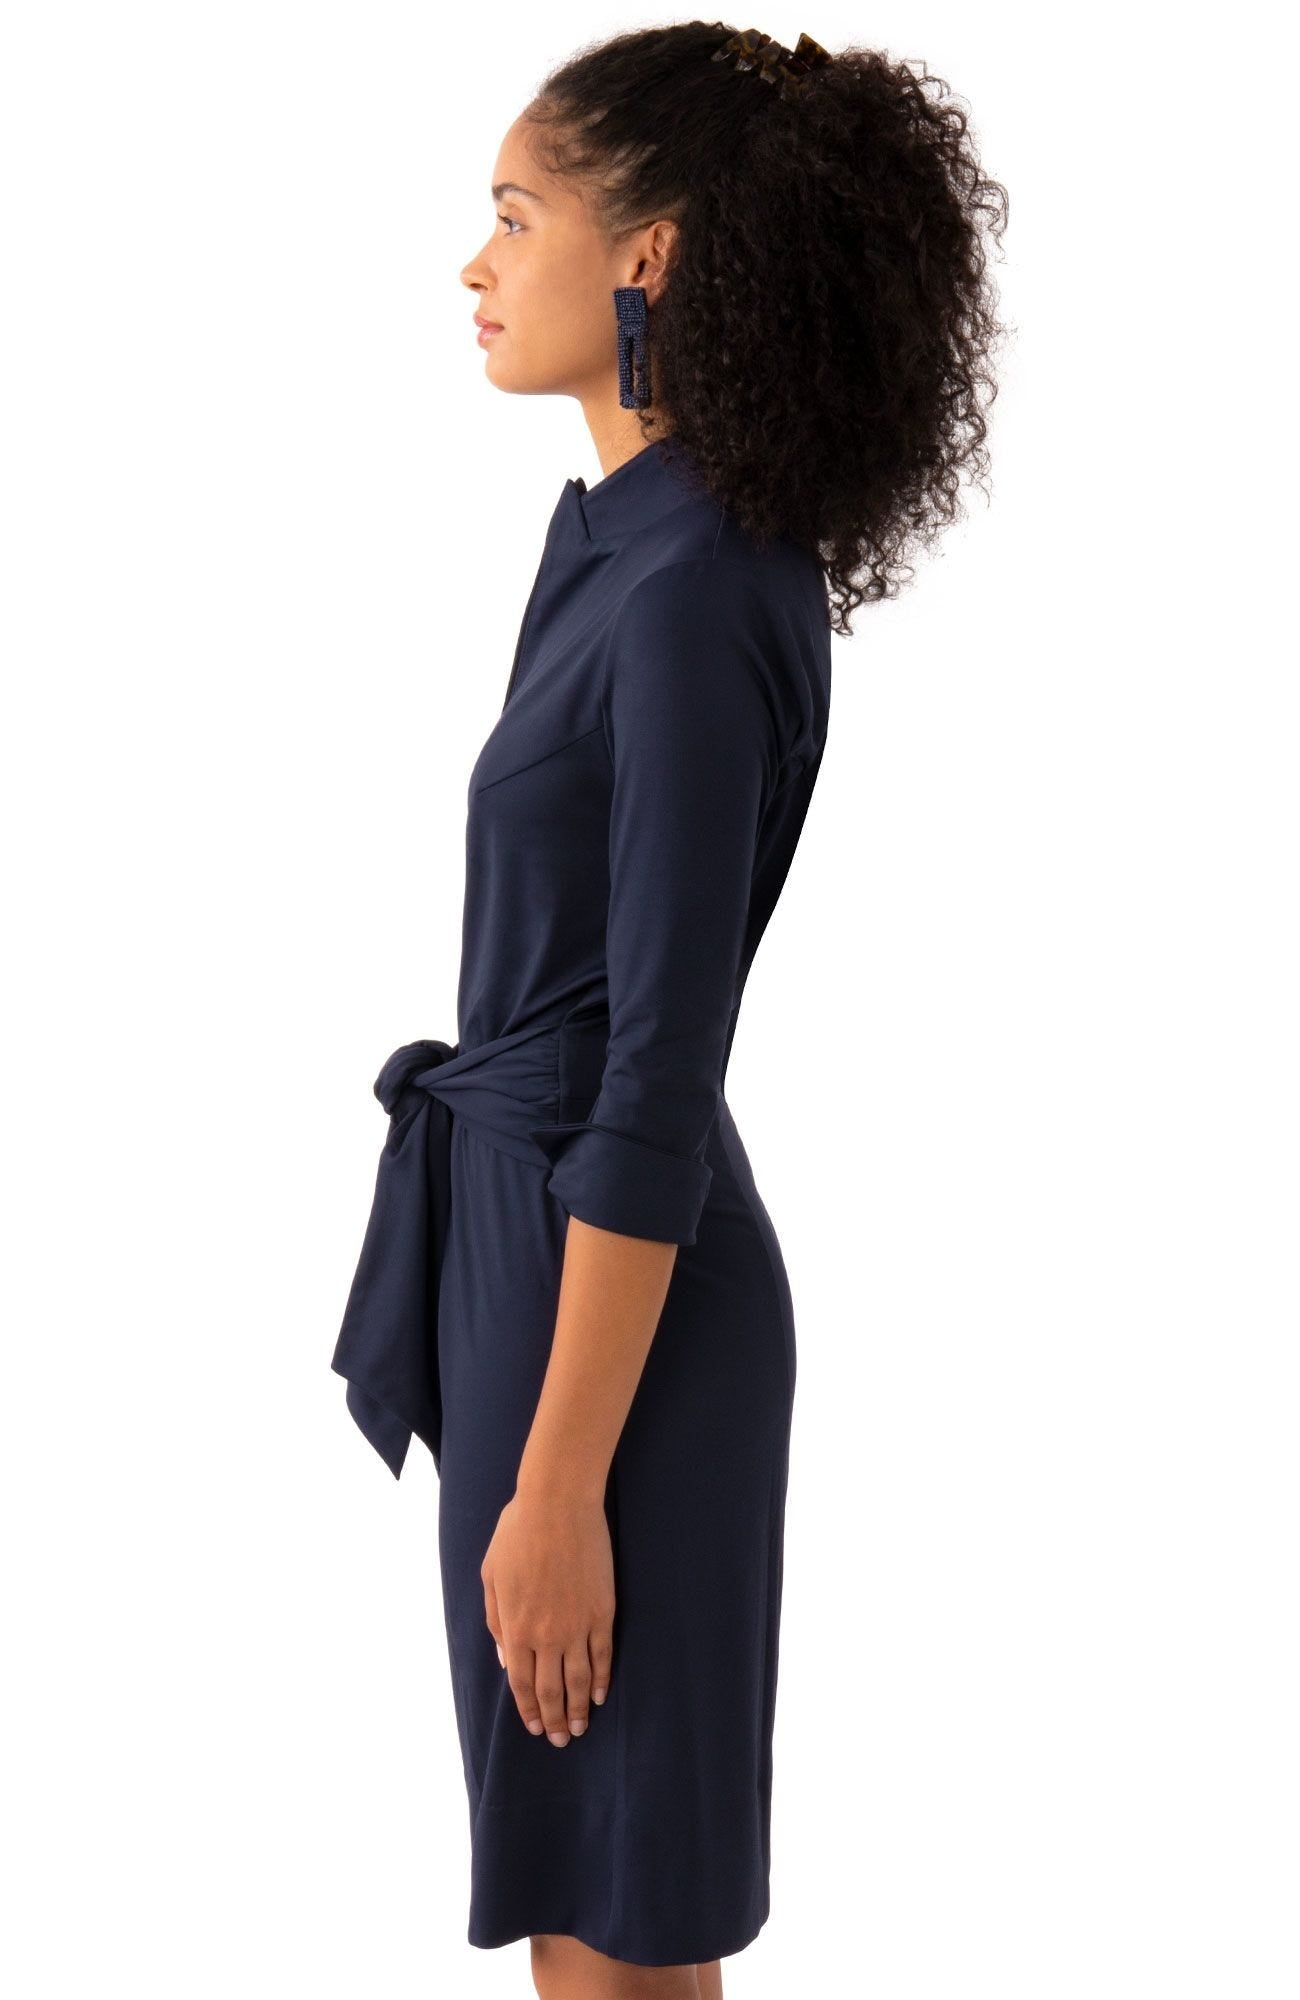 Gretchen Scott Dapper Dress - Solid - Navy